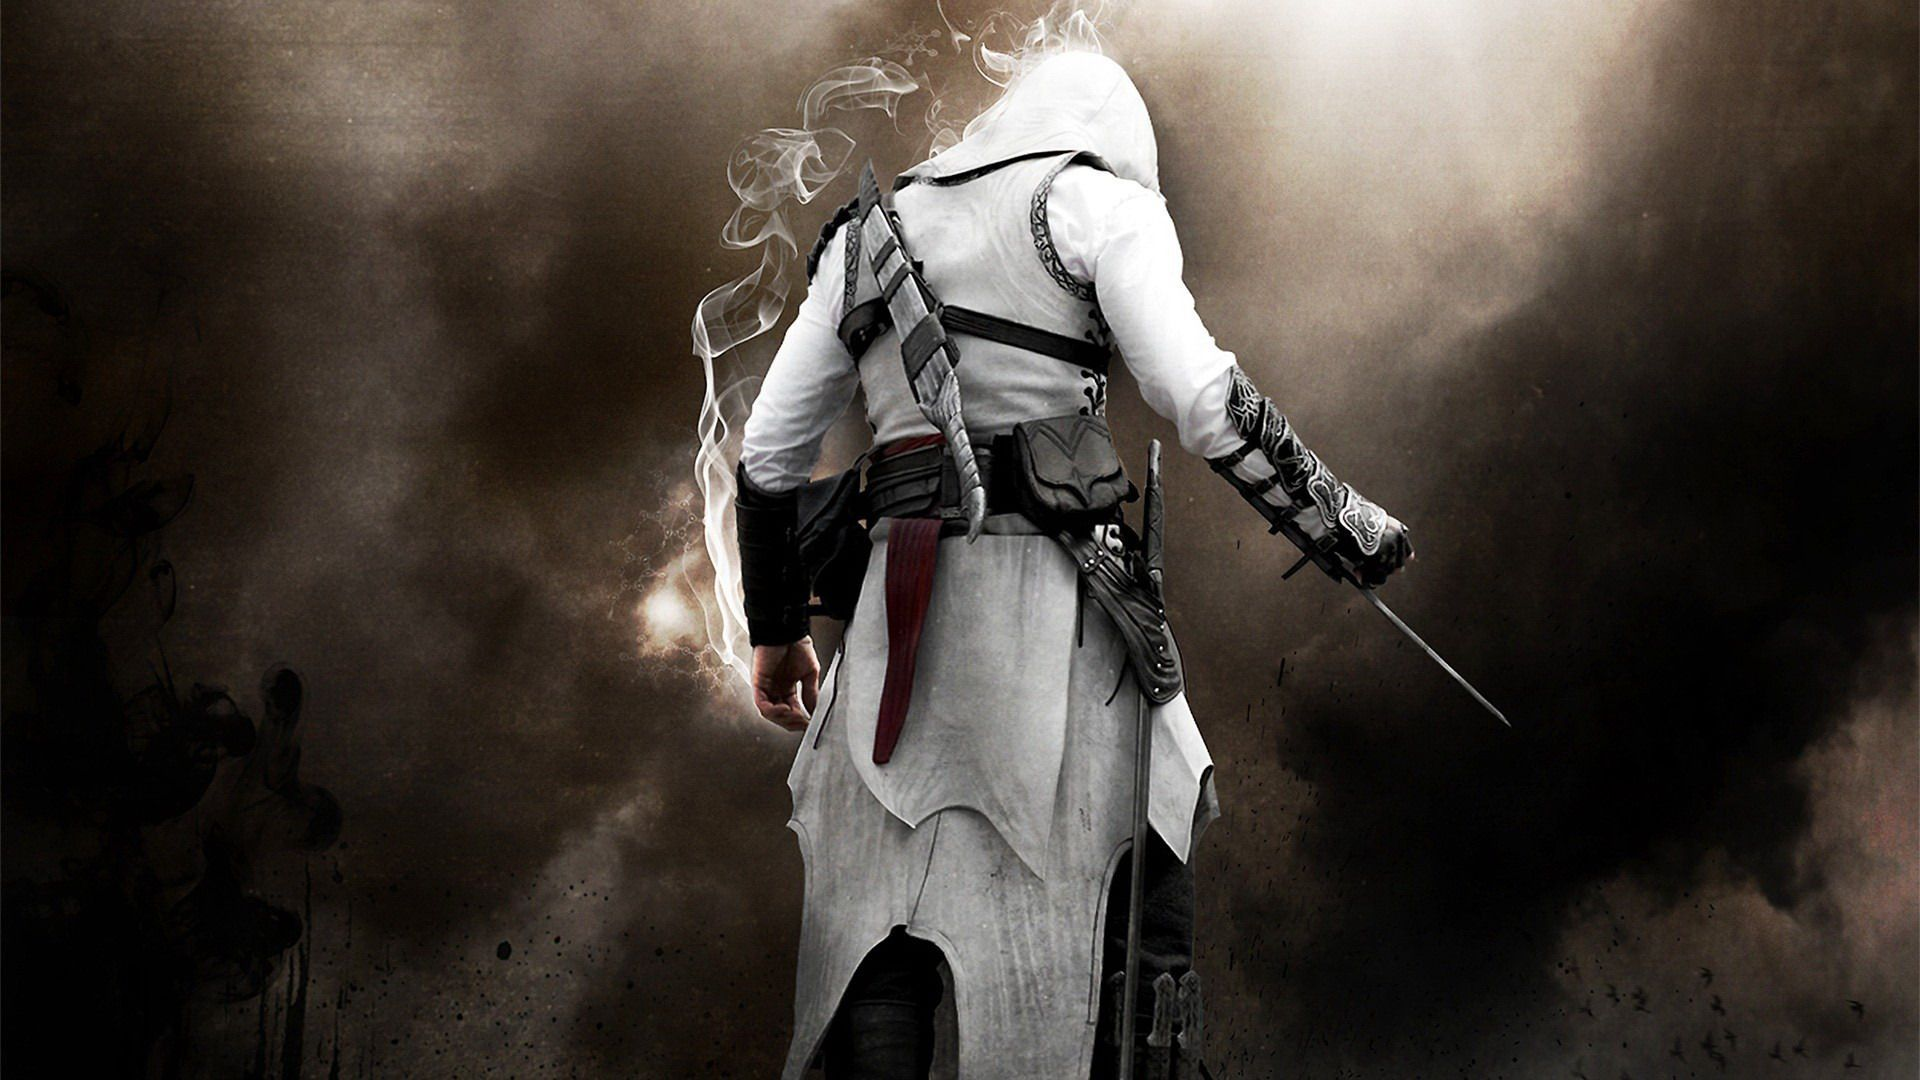 Assassins Creed Wallpaper HD  PixelsTalk  Ezio  HD Wallpapers  Backgrounds  Wallpaper 1920x1080